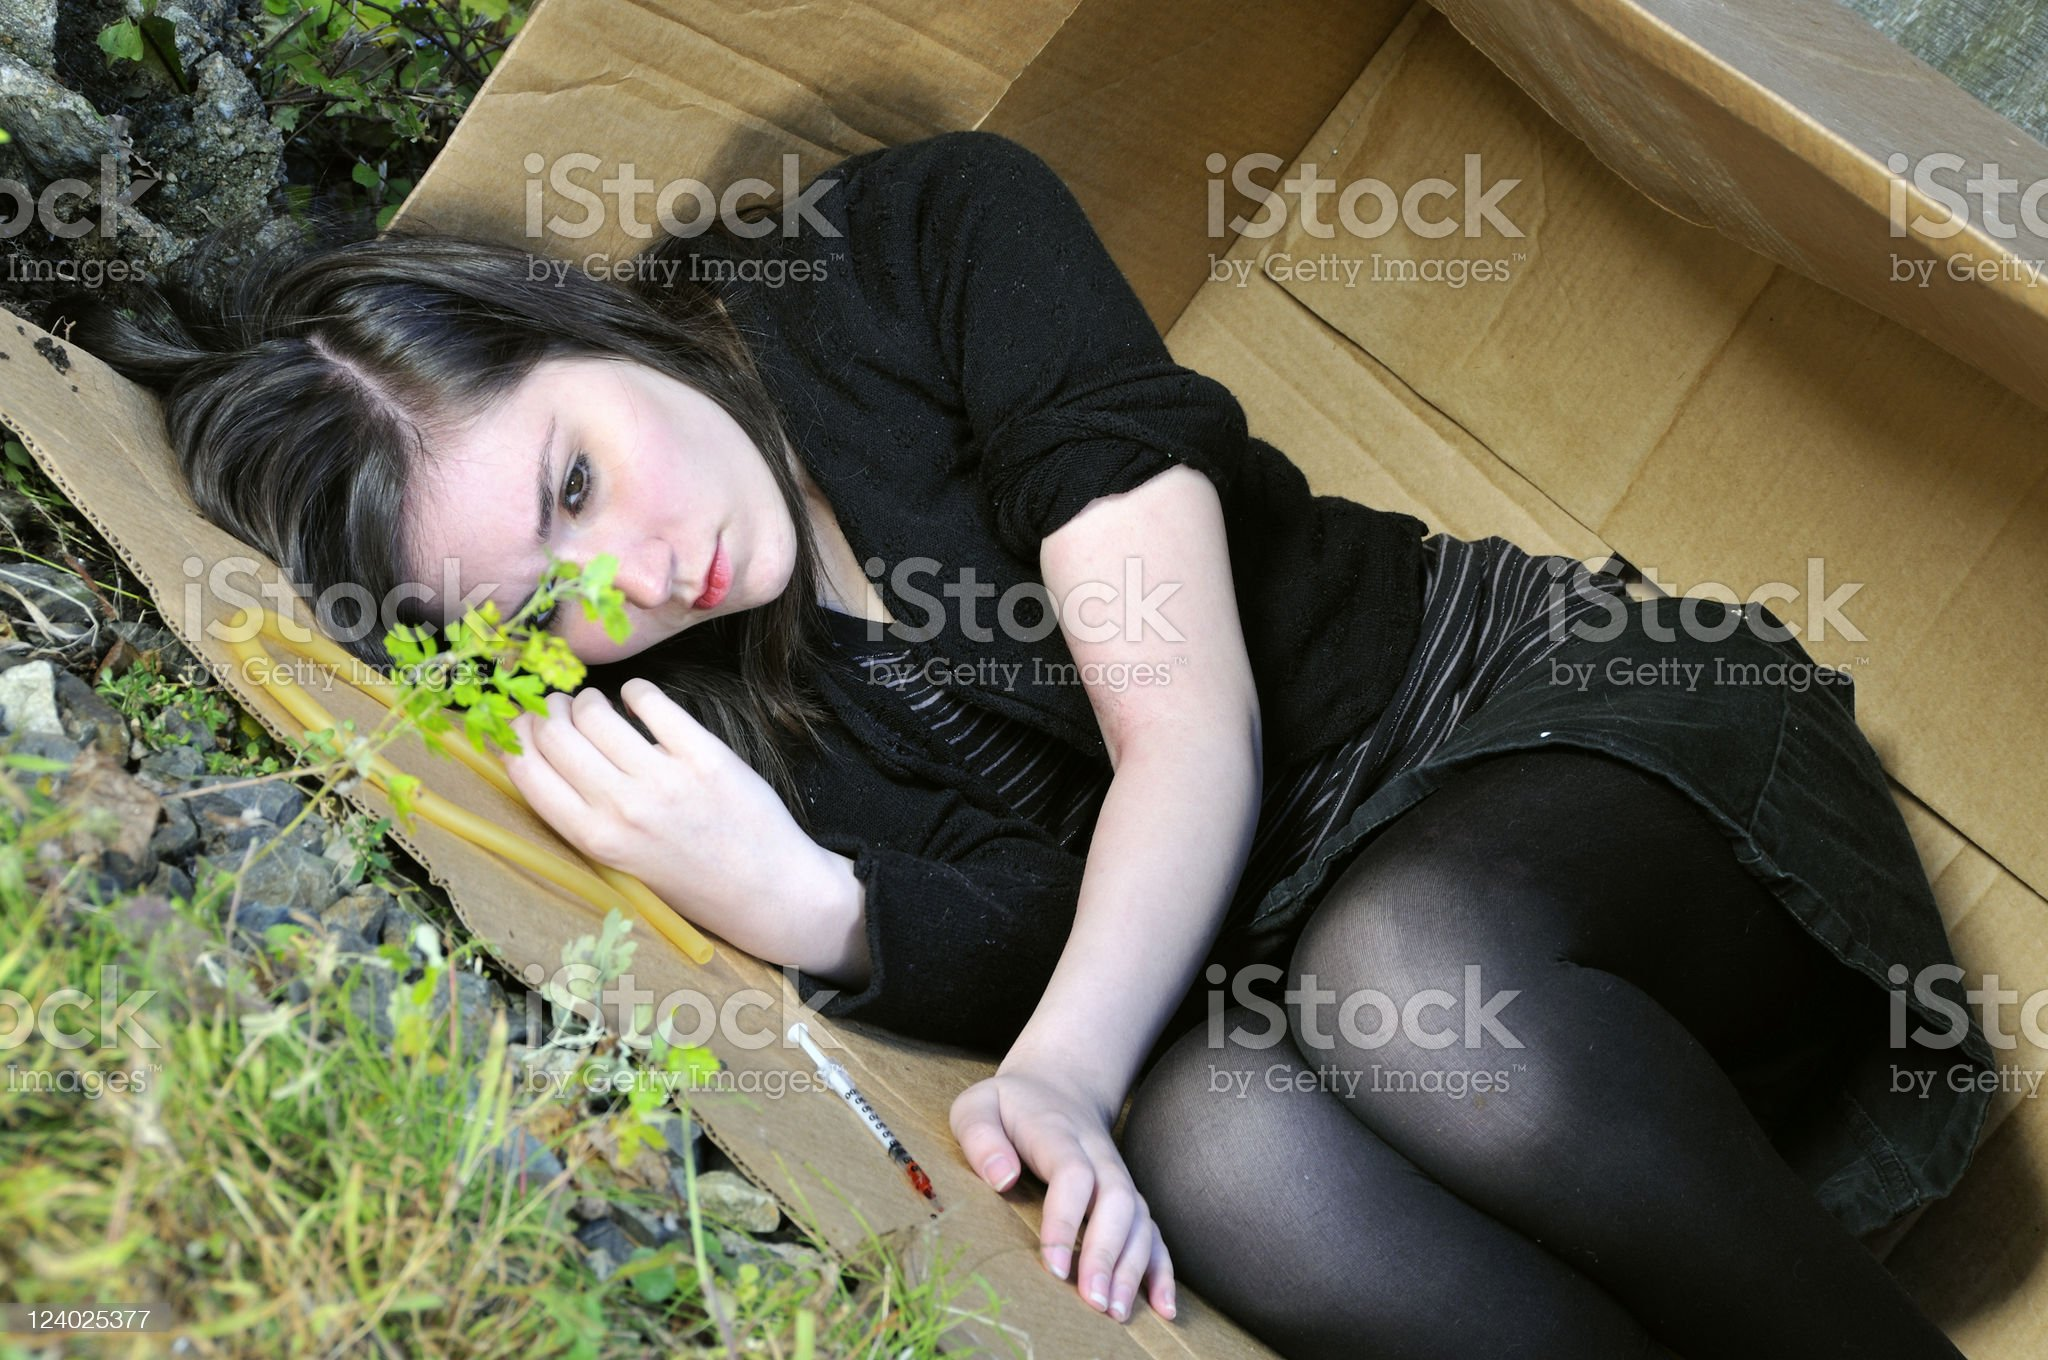 Wasted Youth in Fetal Position royalty-free stock photo